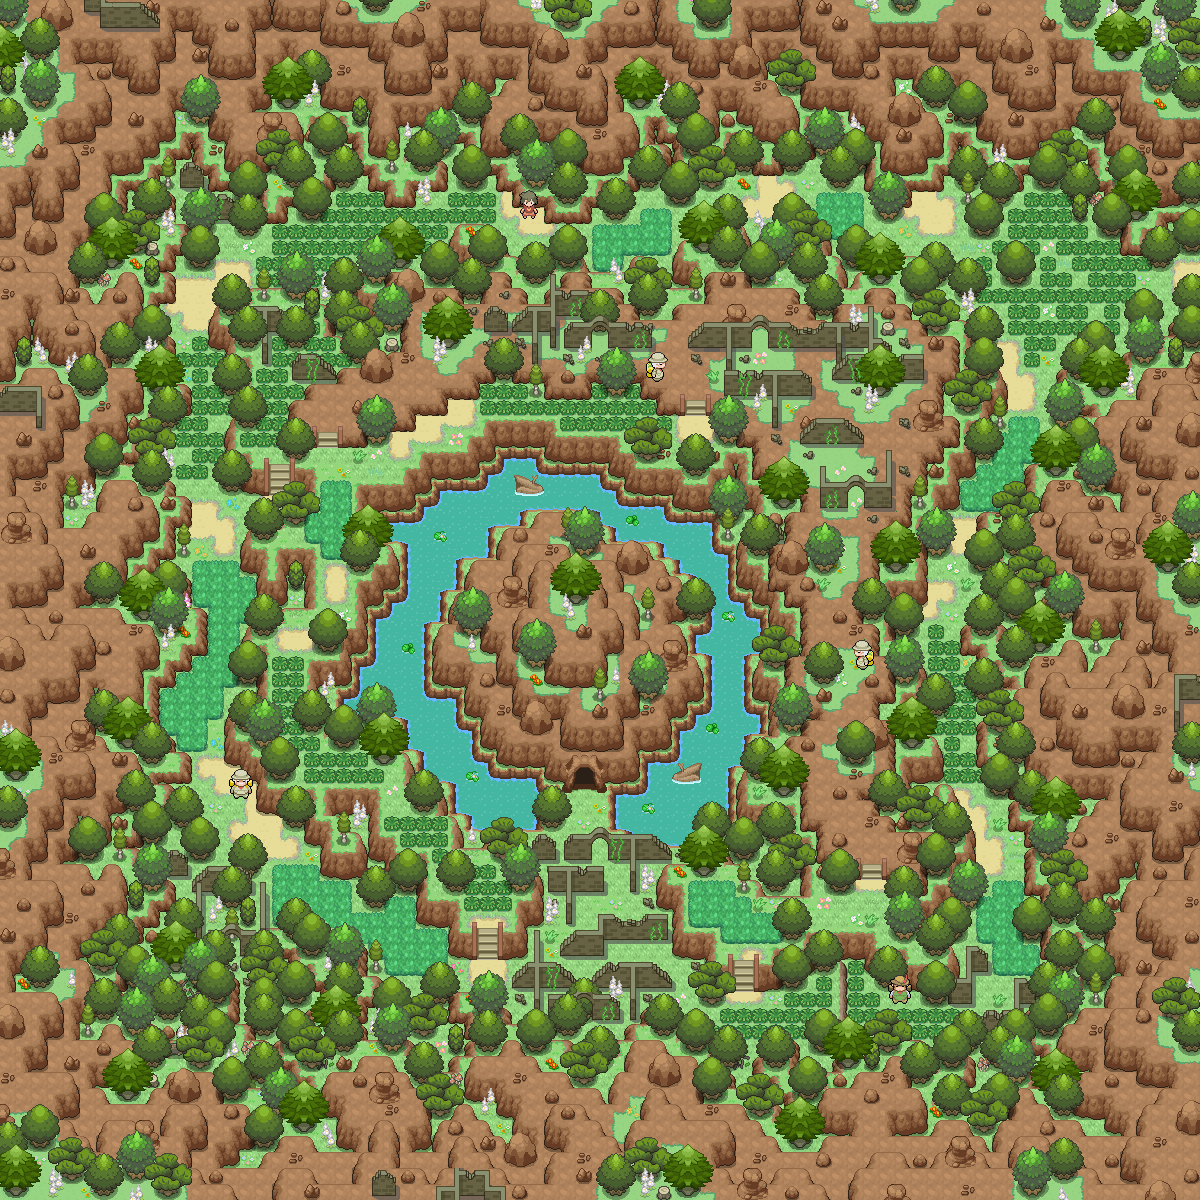 Pokémon-Map: Ruinental~:3